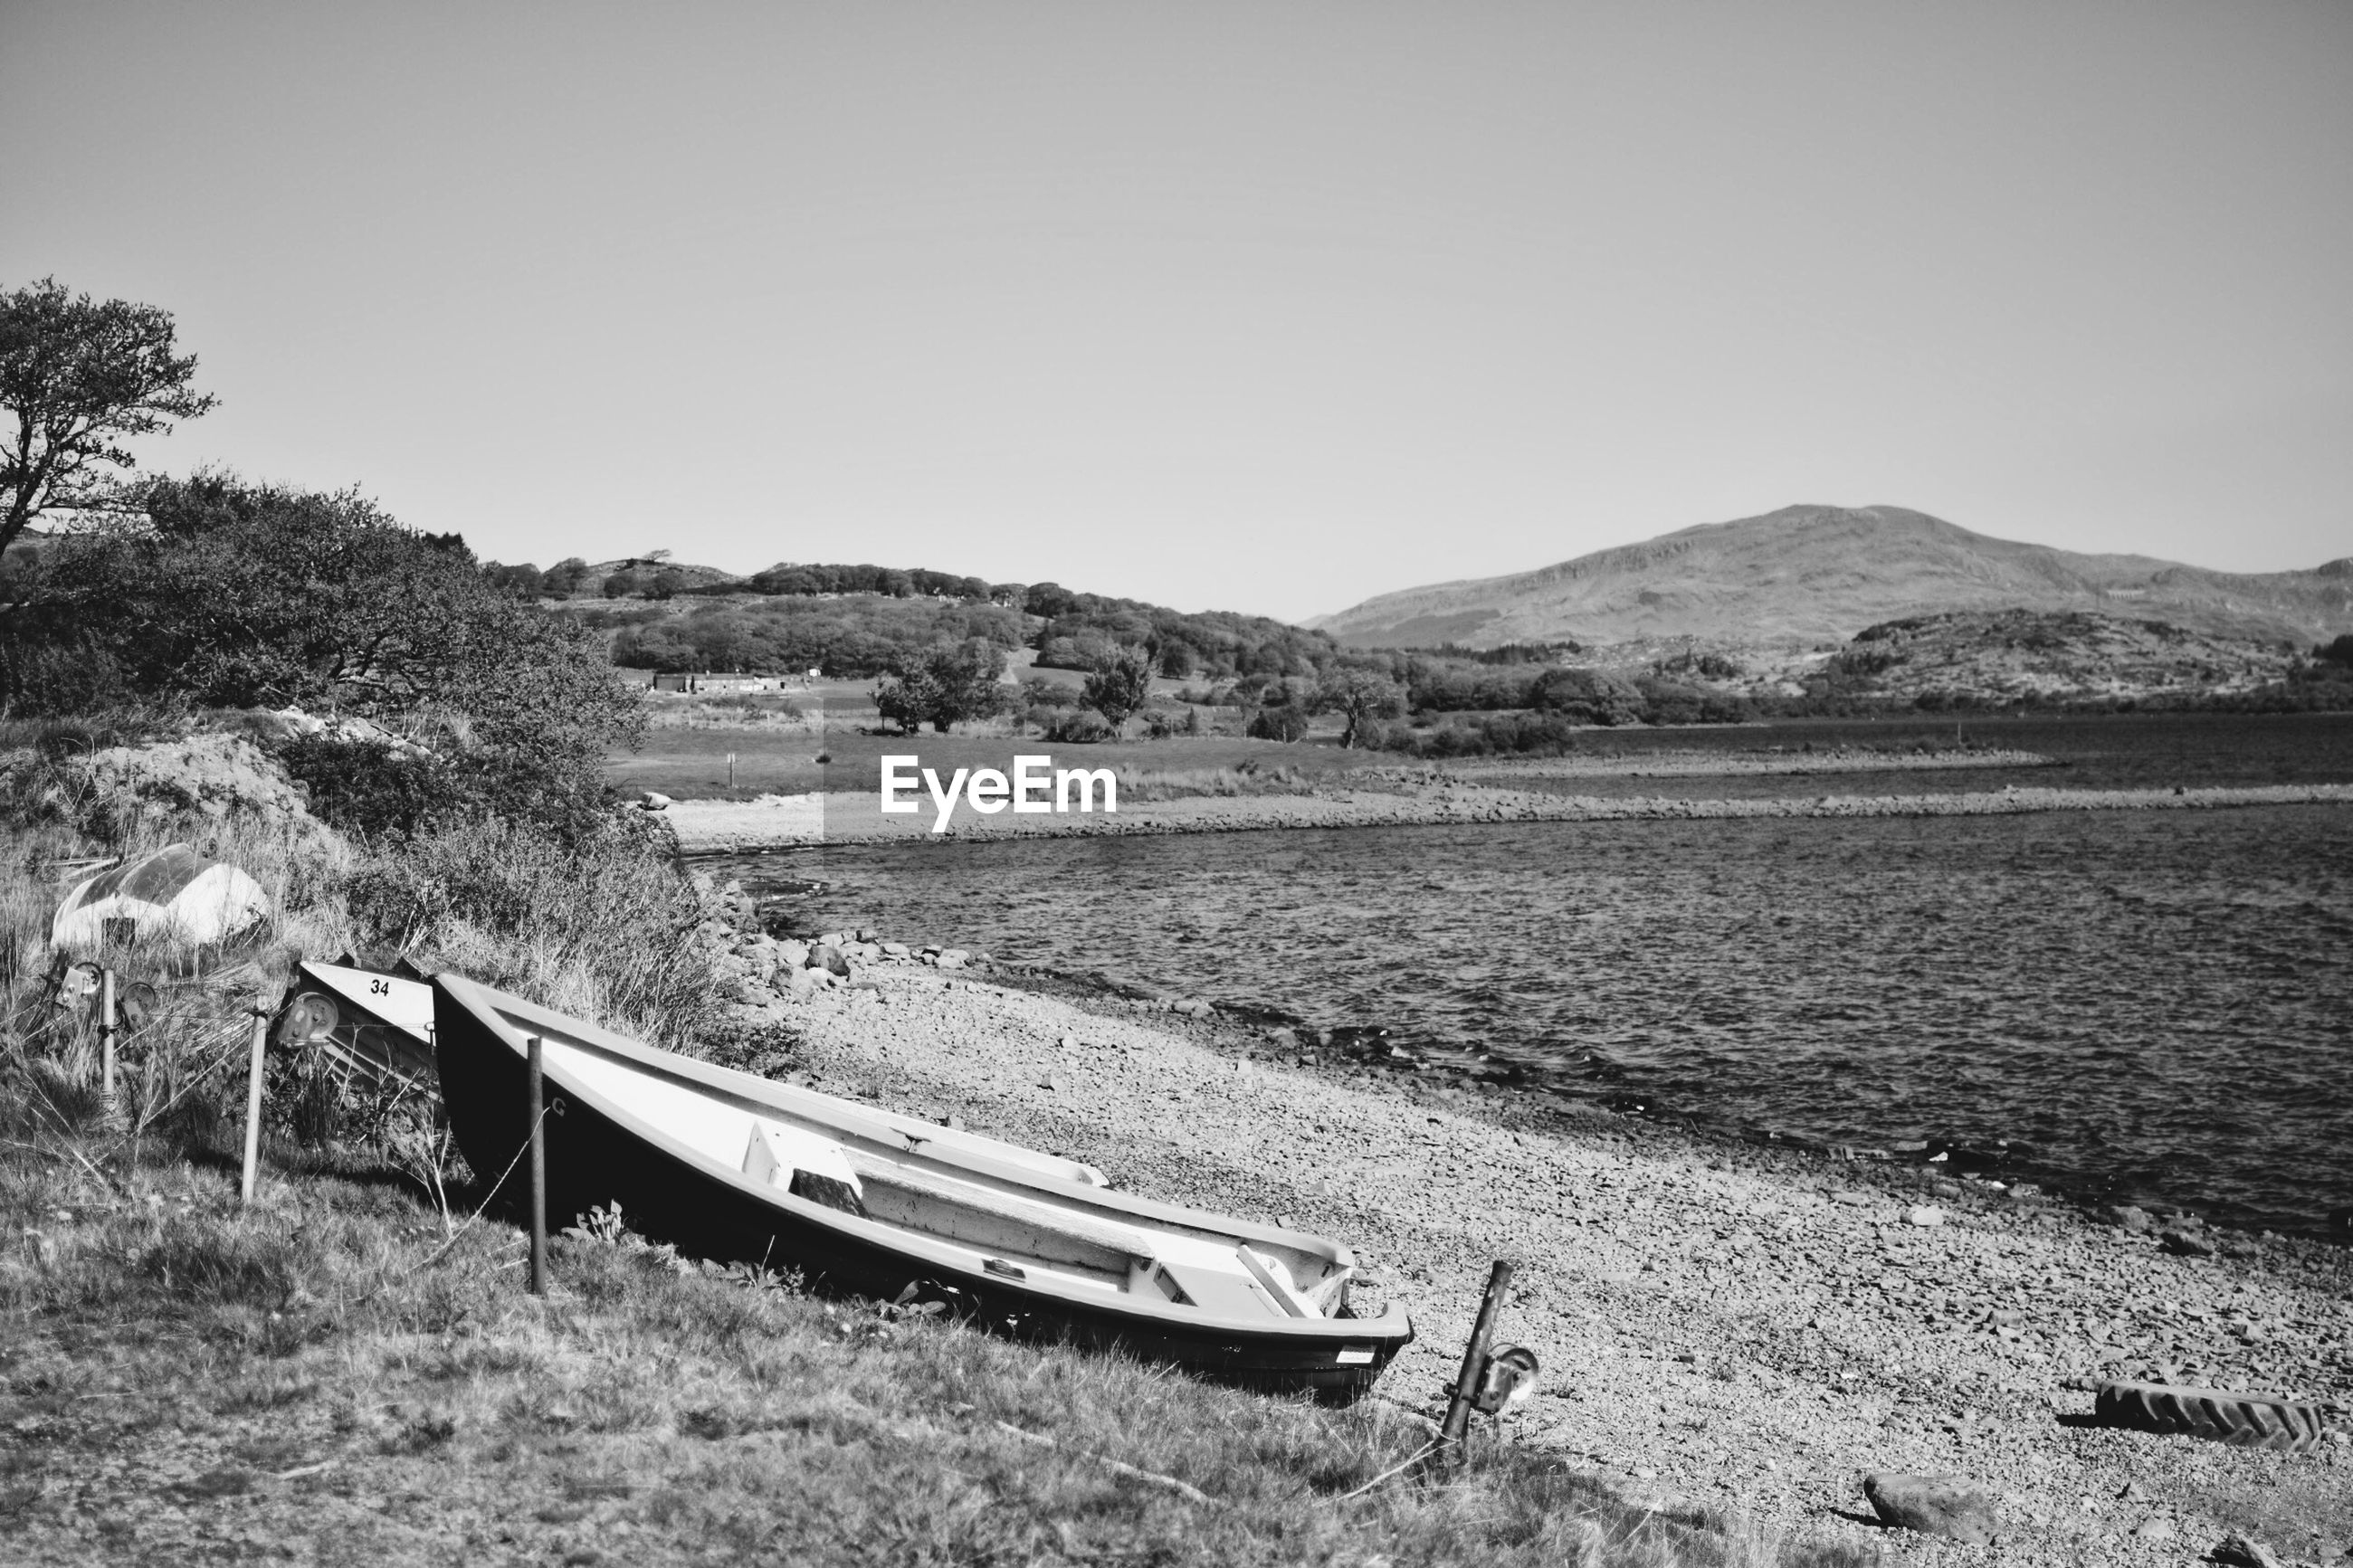 BOAT MOORED ON FIELD BY MOUNTAIN AGAINST CLEAR SKY